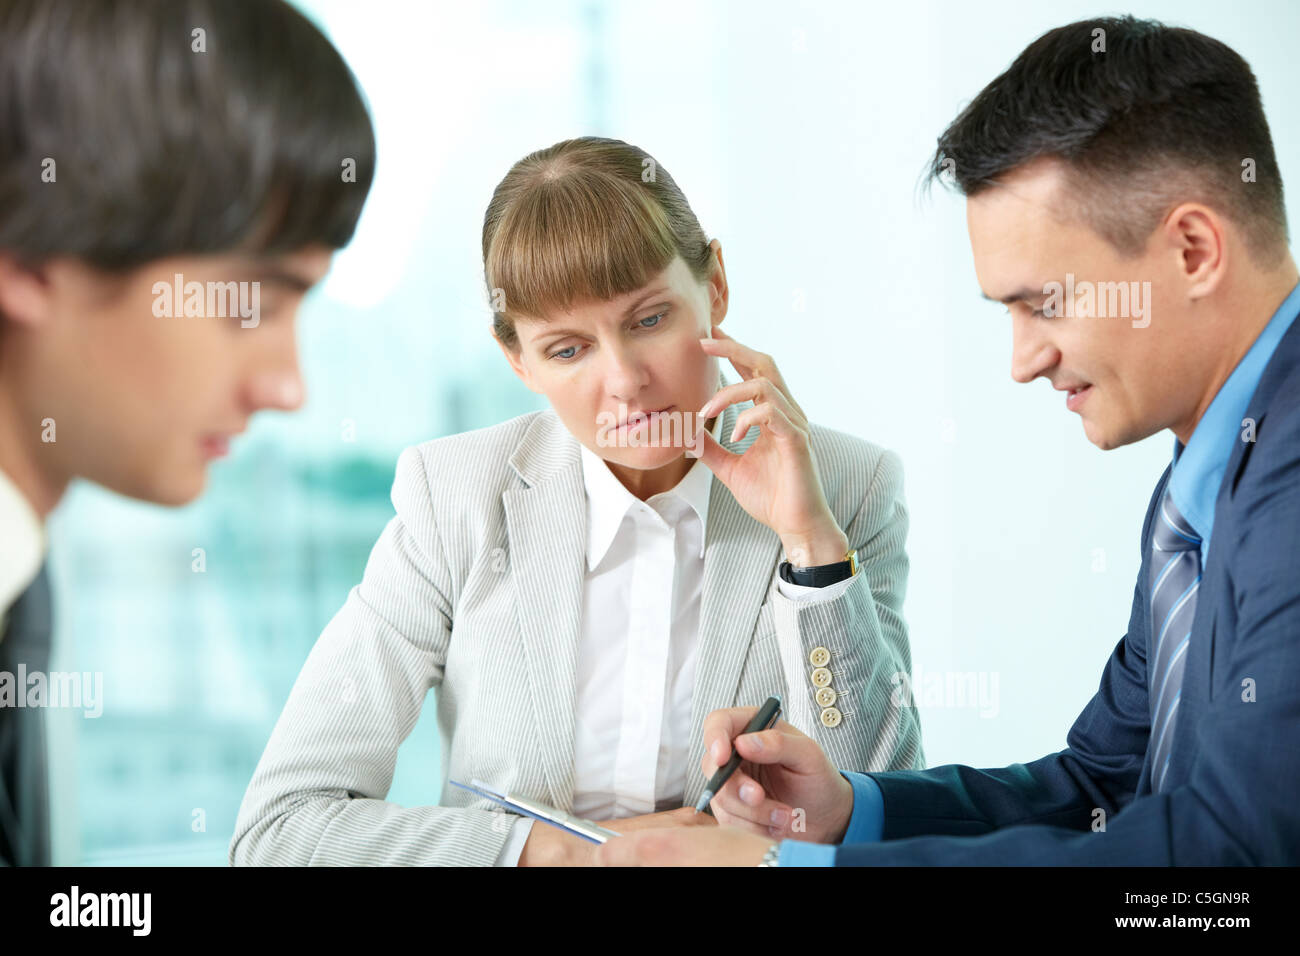 A businesswoman sitting in deep thought among her colleagues Stock Photo